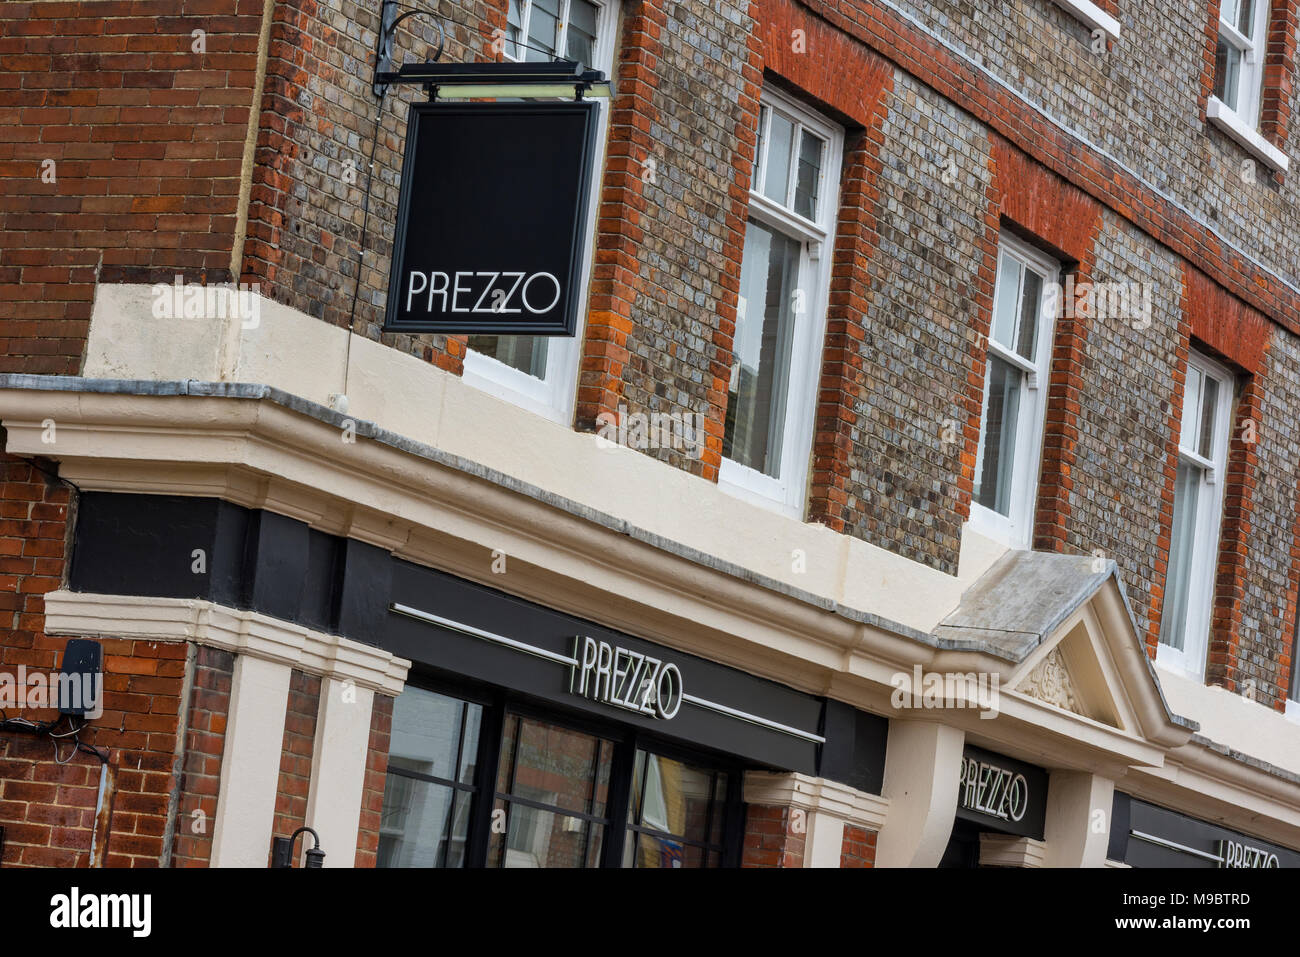 prezzo fast food high street restaurant or food chain serving traditional fayre with an italian bent. troubled restaurant chain getting closed down. Stock Photo